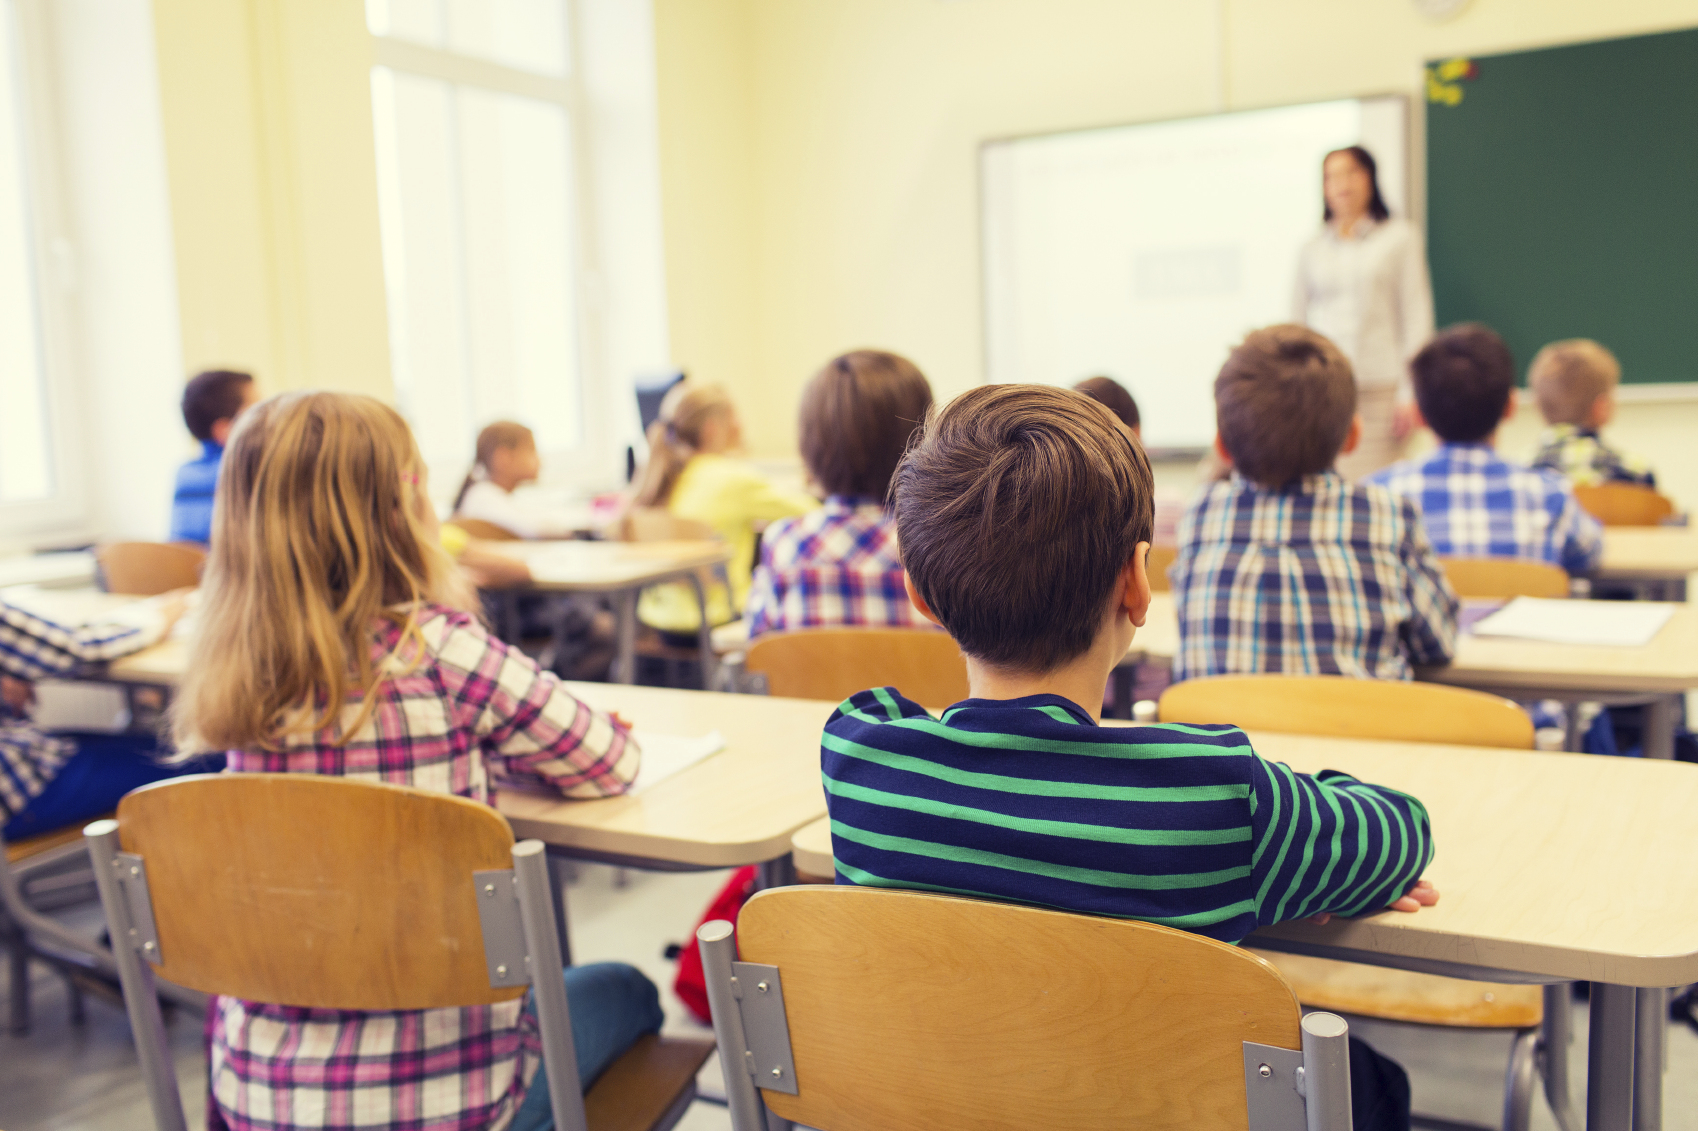 Group of school kids and teacher in classroom. (stock image)